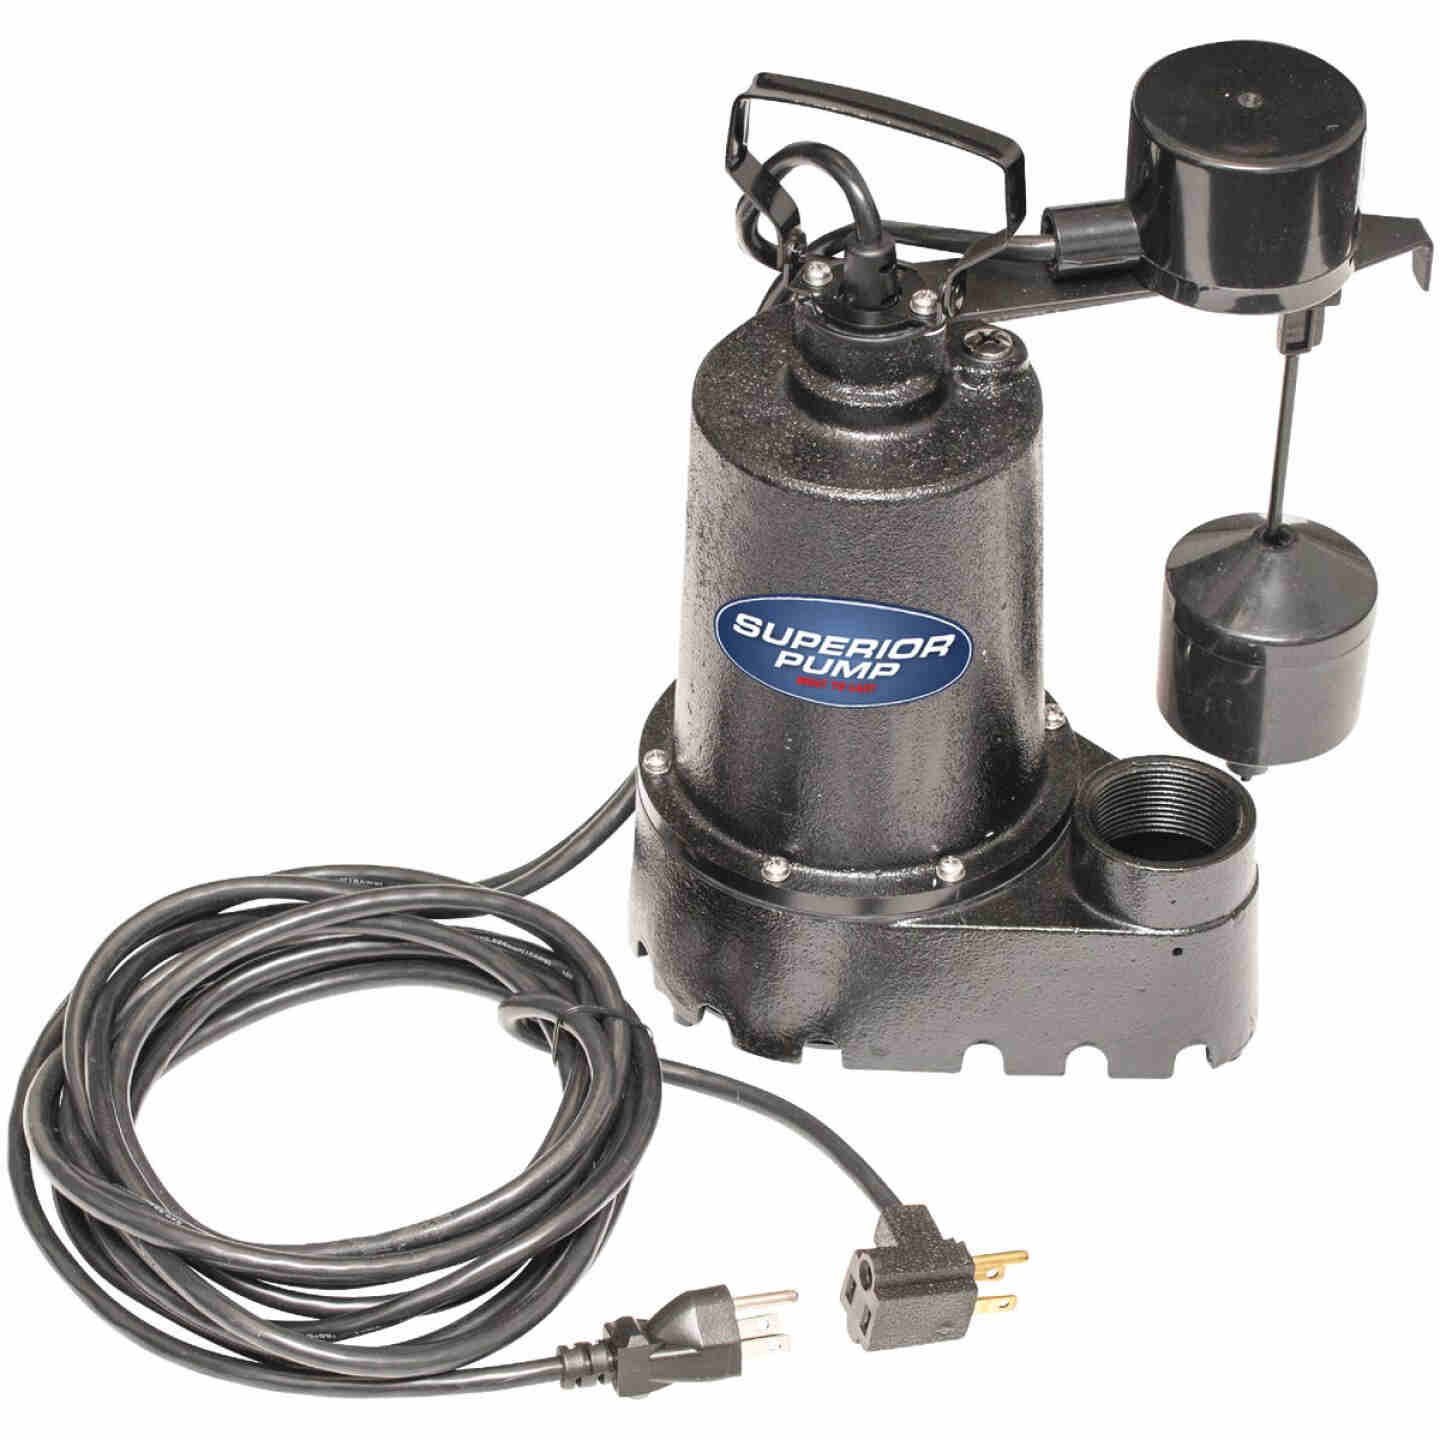 Superior Pump 1/3 HP Cast Iron Submersible Sump Pump with Vertical Float Switch & Stainless Steel Impeller Image 4